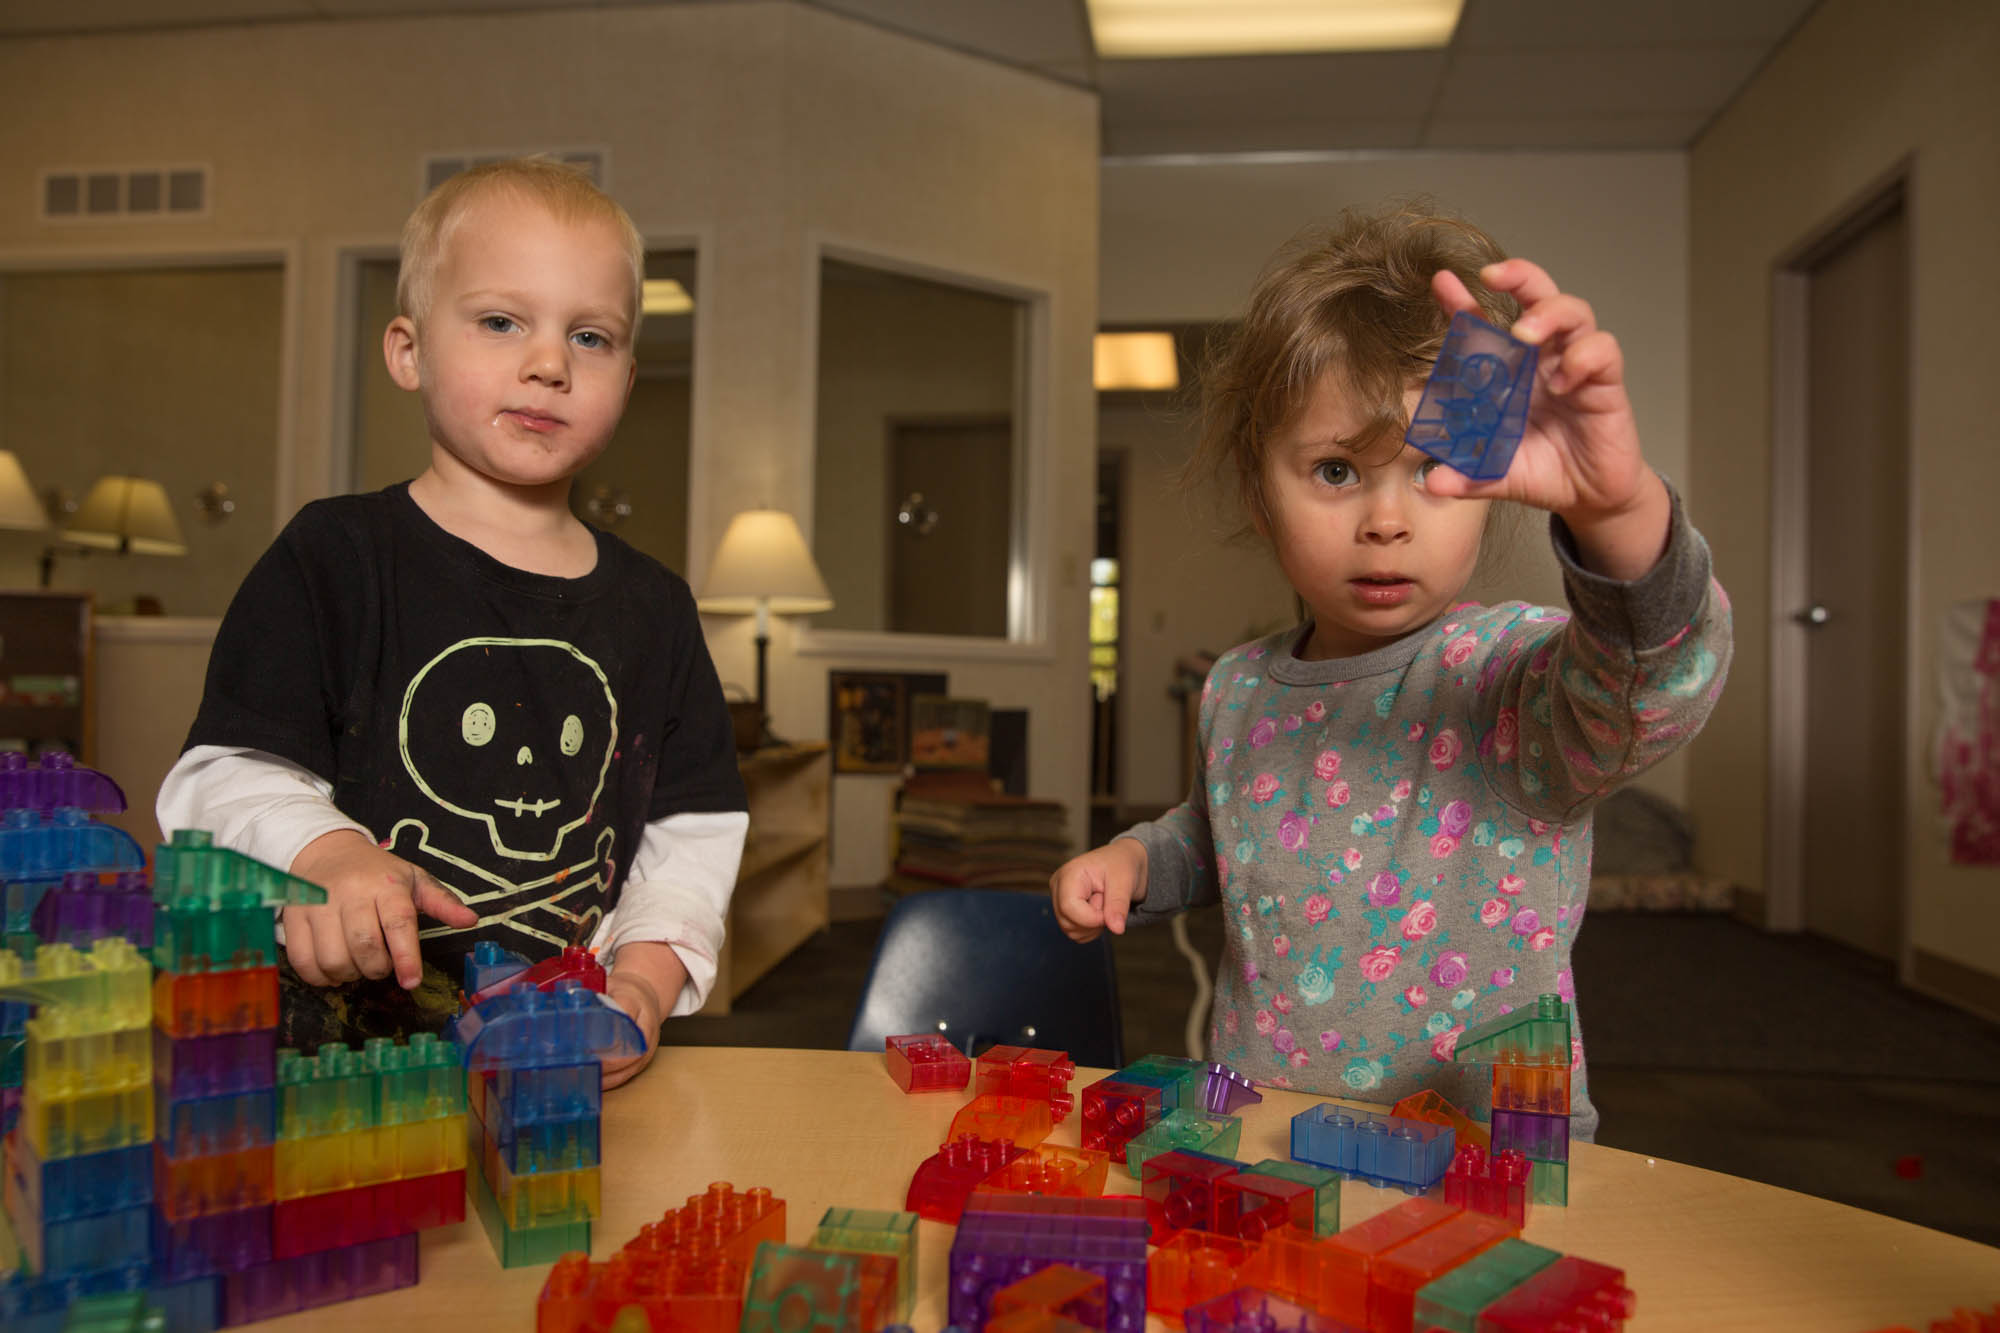 A baby boy and girl playing with blocks